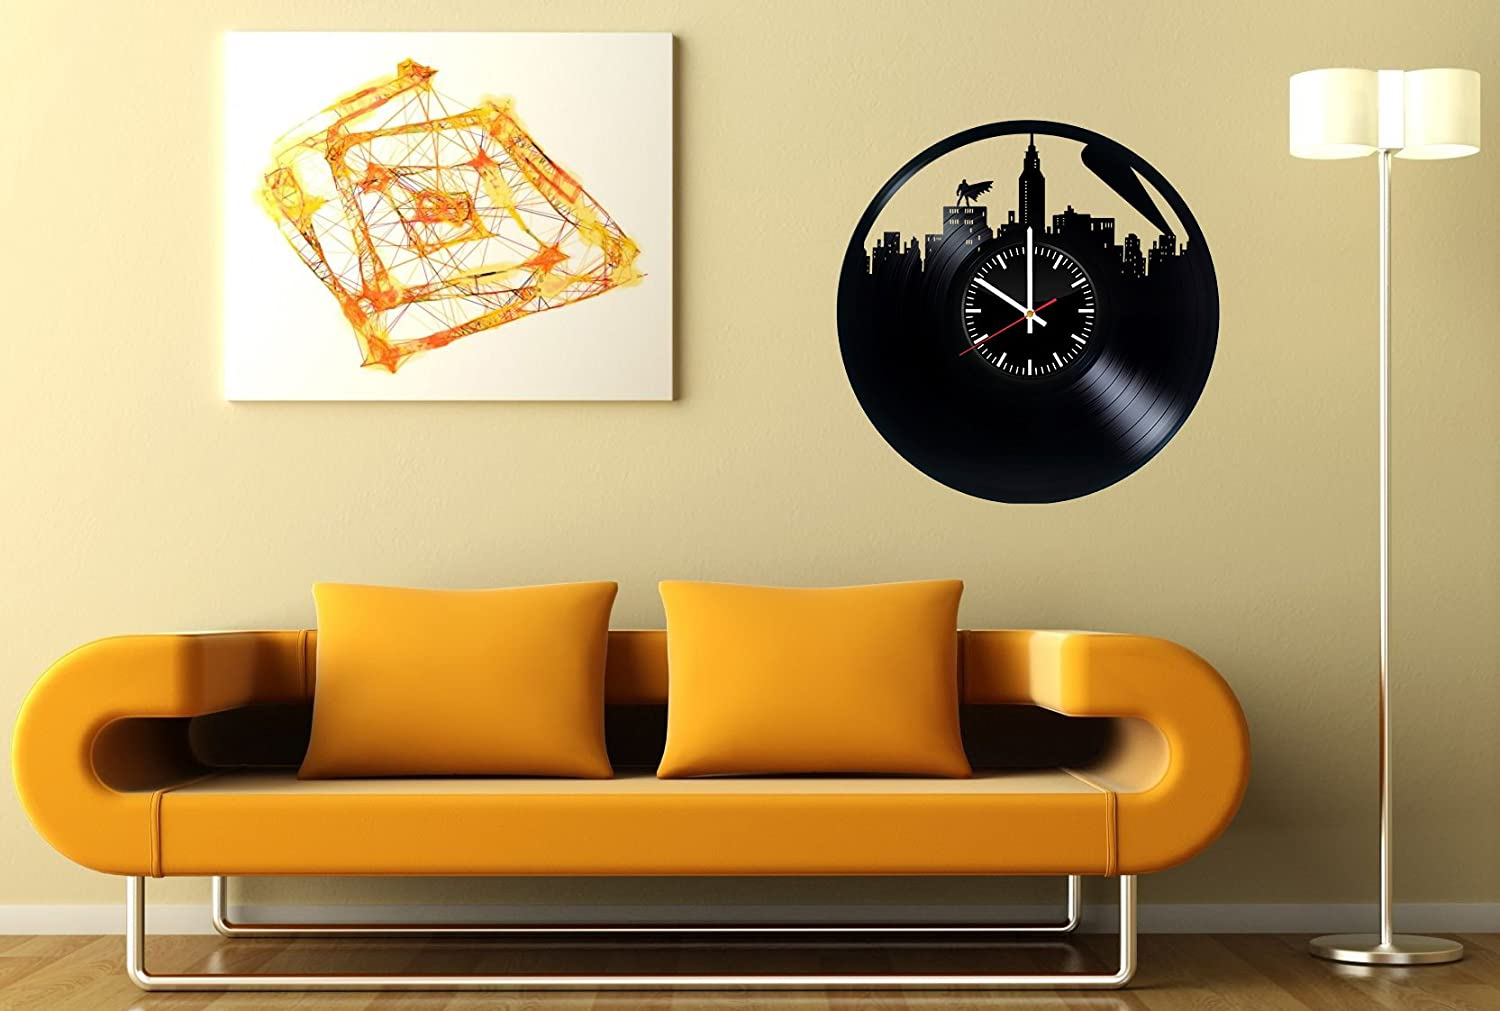 Vinyl Records Decorations For Wall Gallery - home design wall stickers